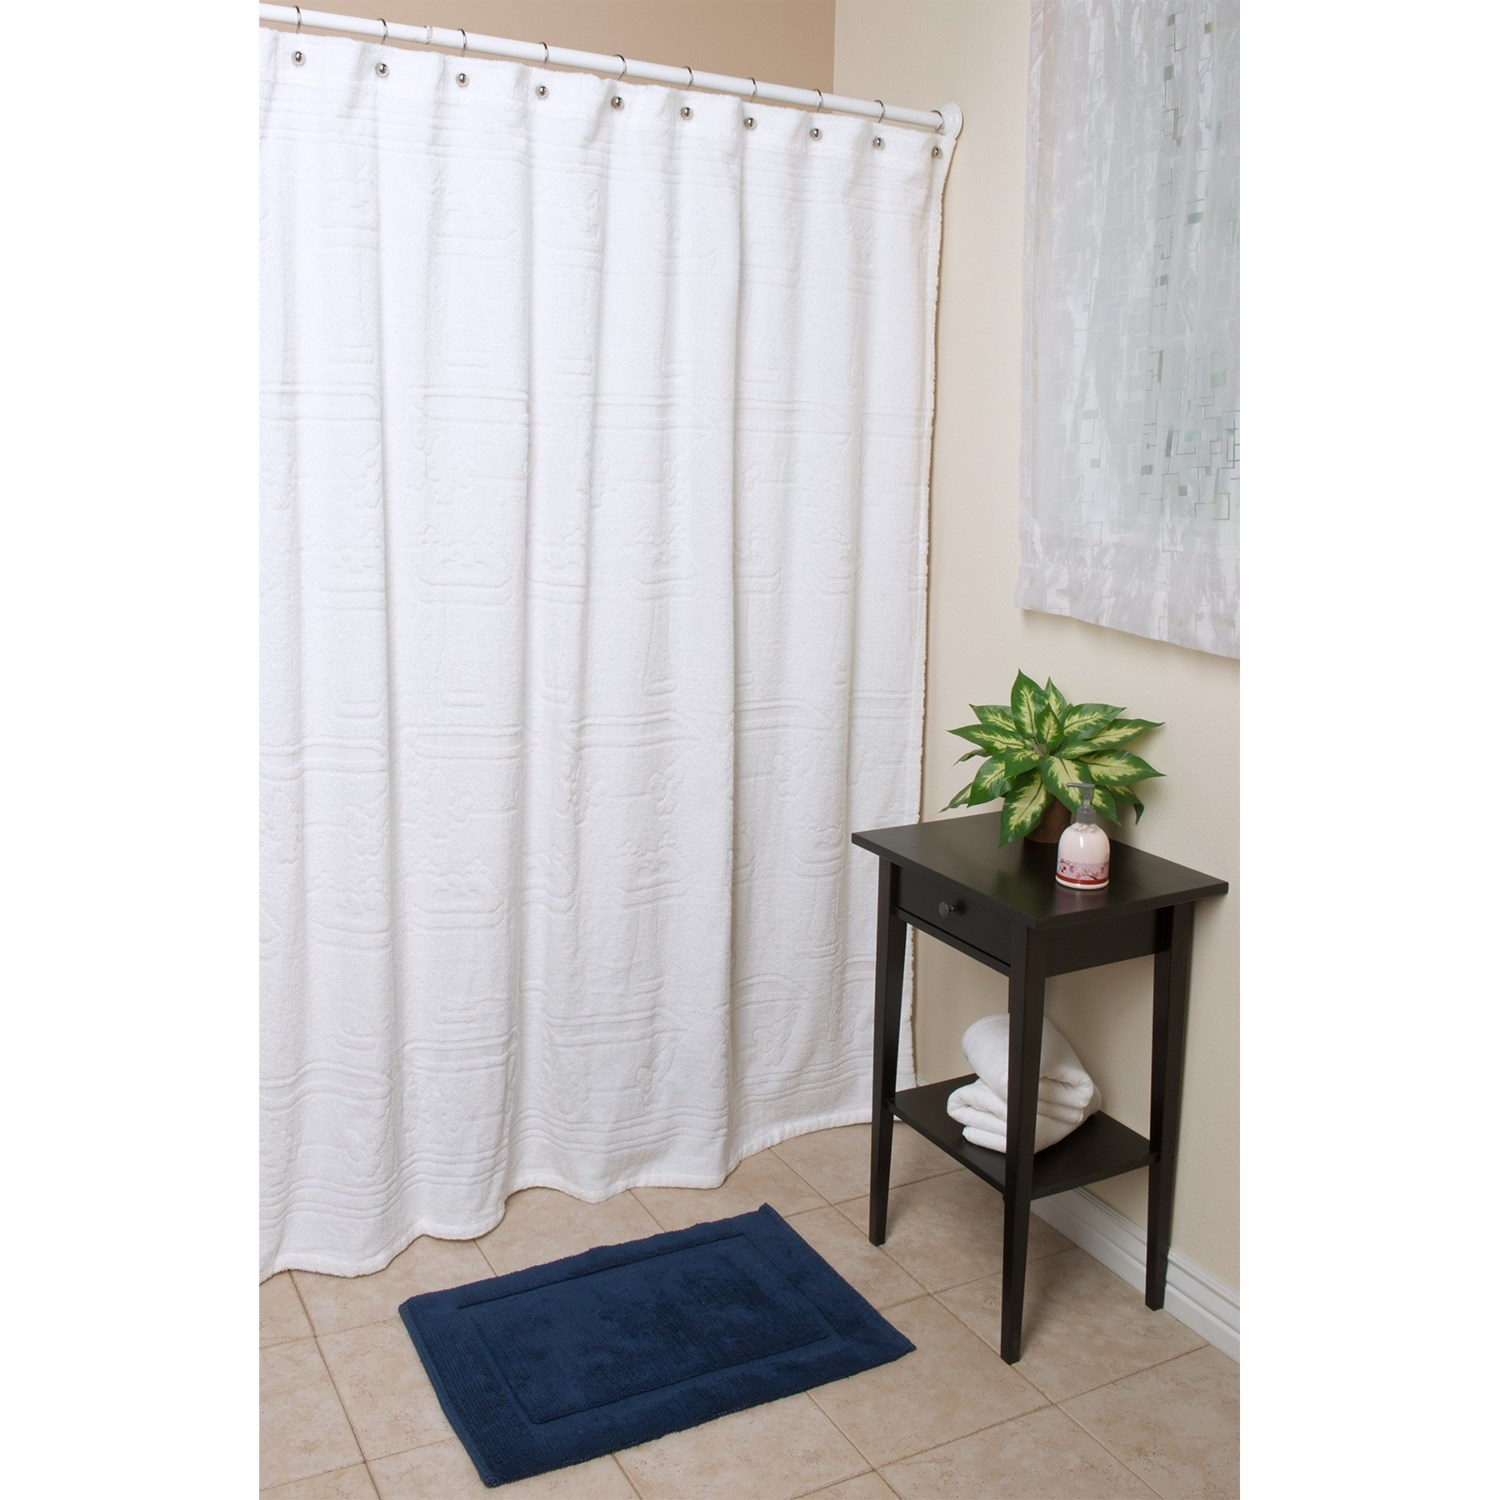 Terry Cloth Shower Curtain 28 Images Terry Cloth Shower Curtain Foter Spa By Espalma Terry